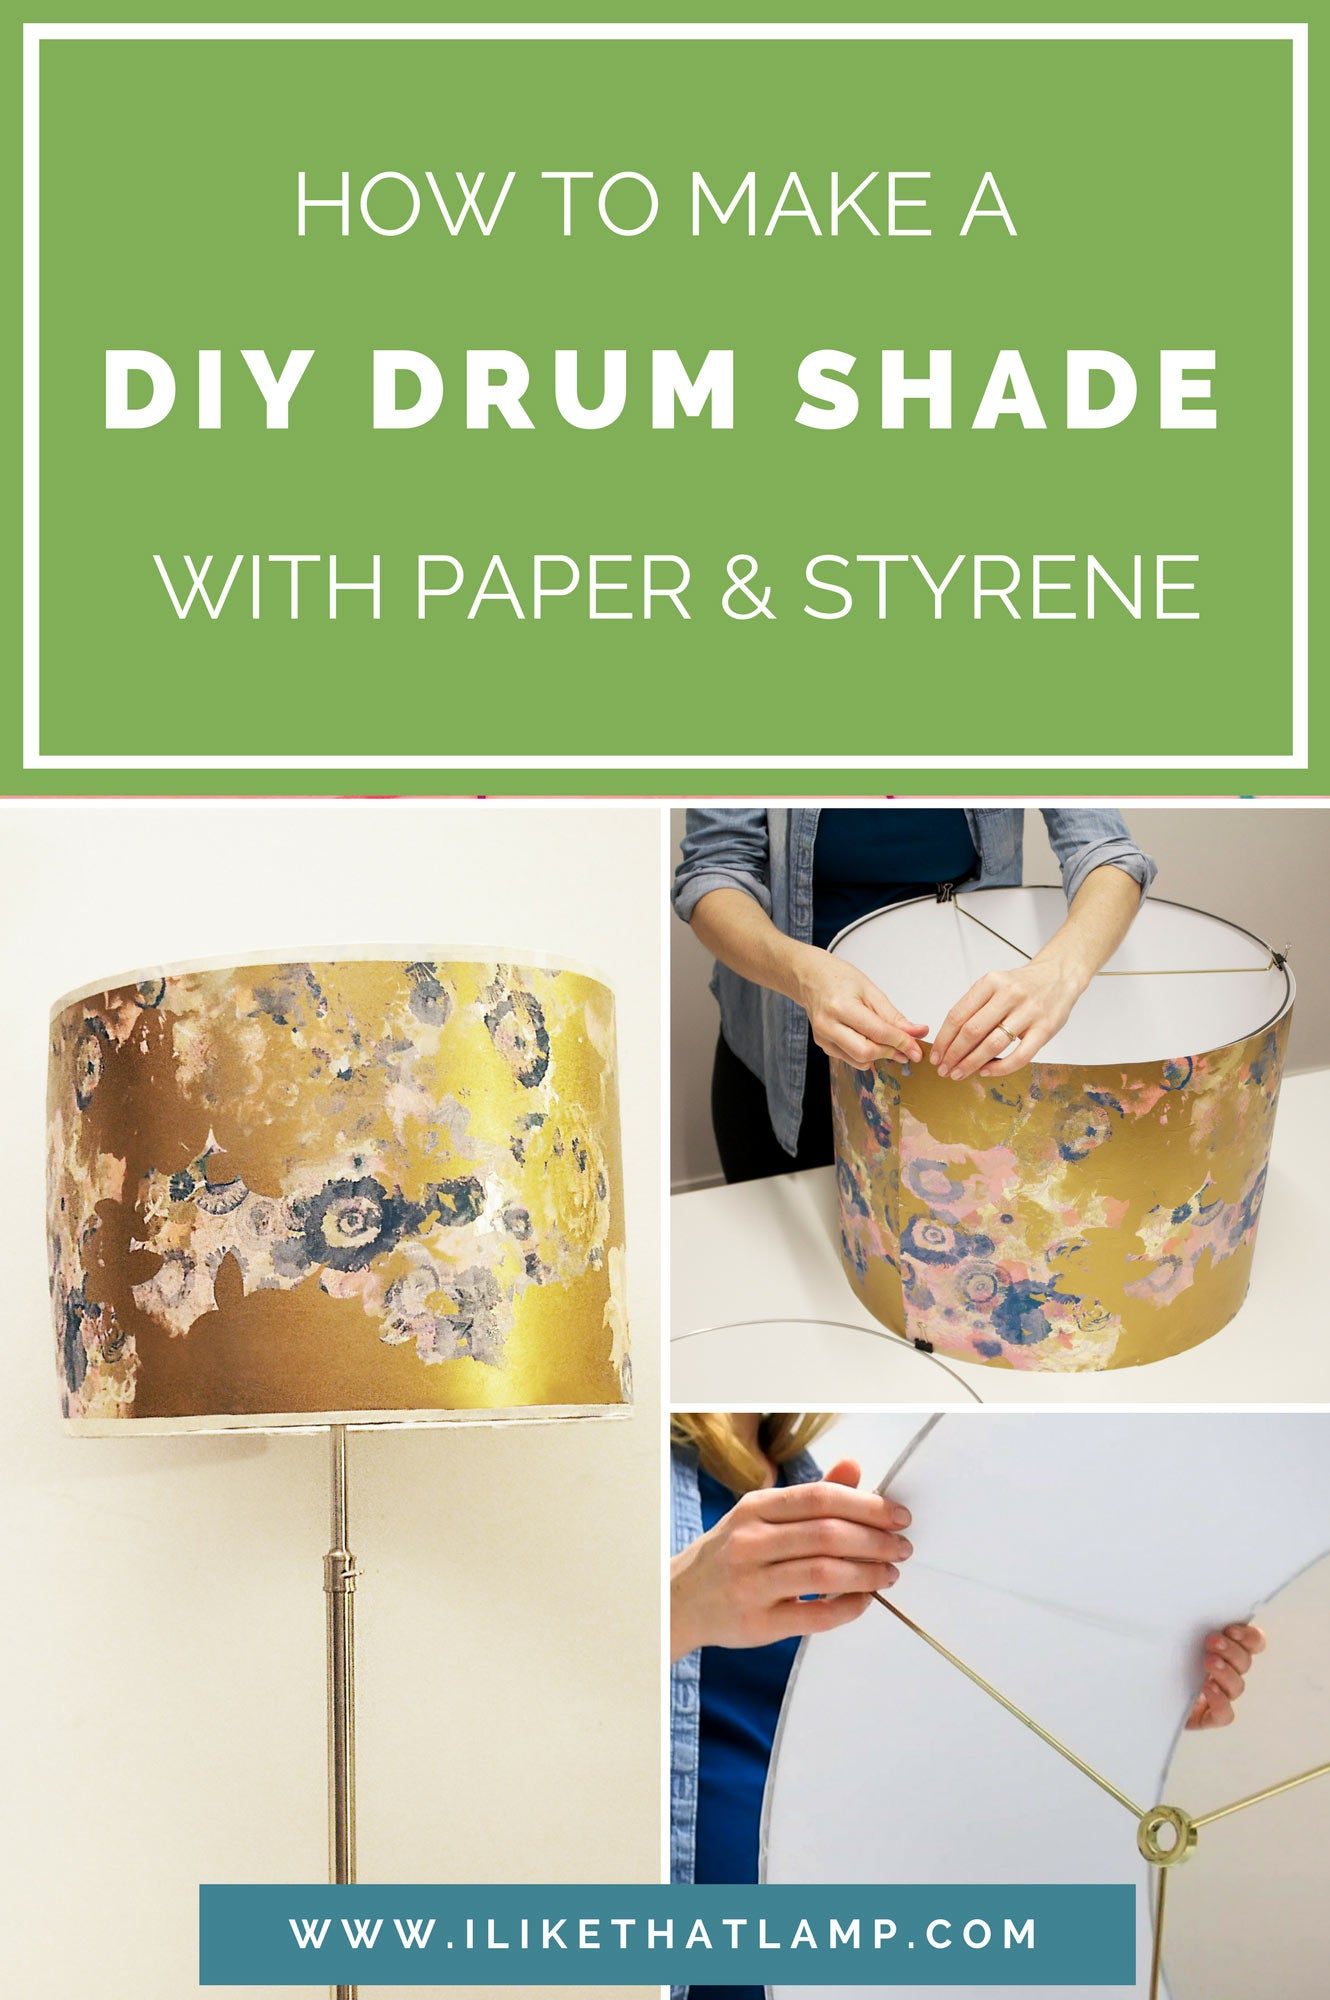 How To Make A Durable Diy Drum Shade With Paper And Adhesive Styrene Makely